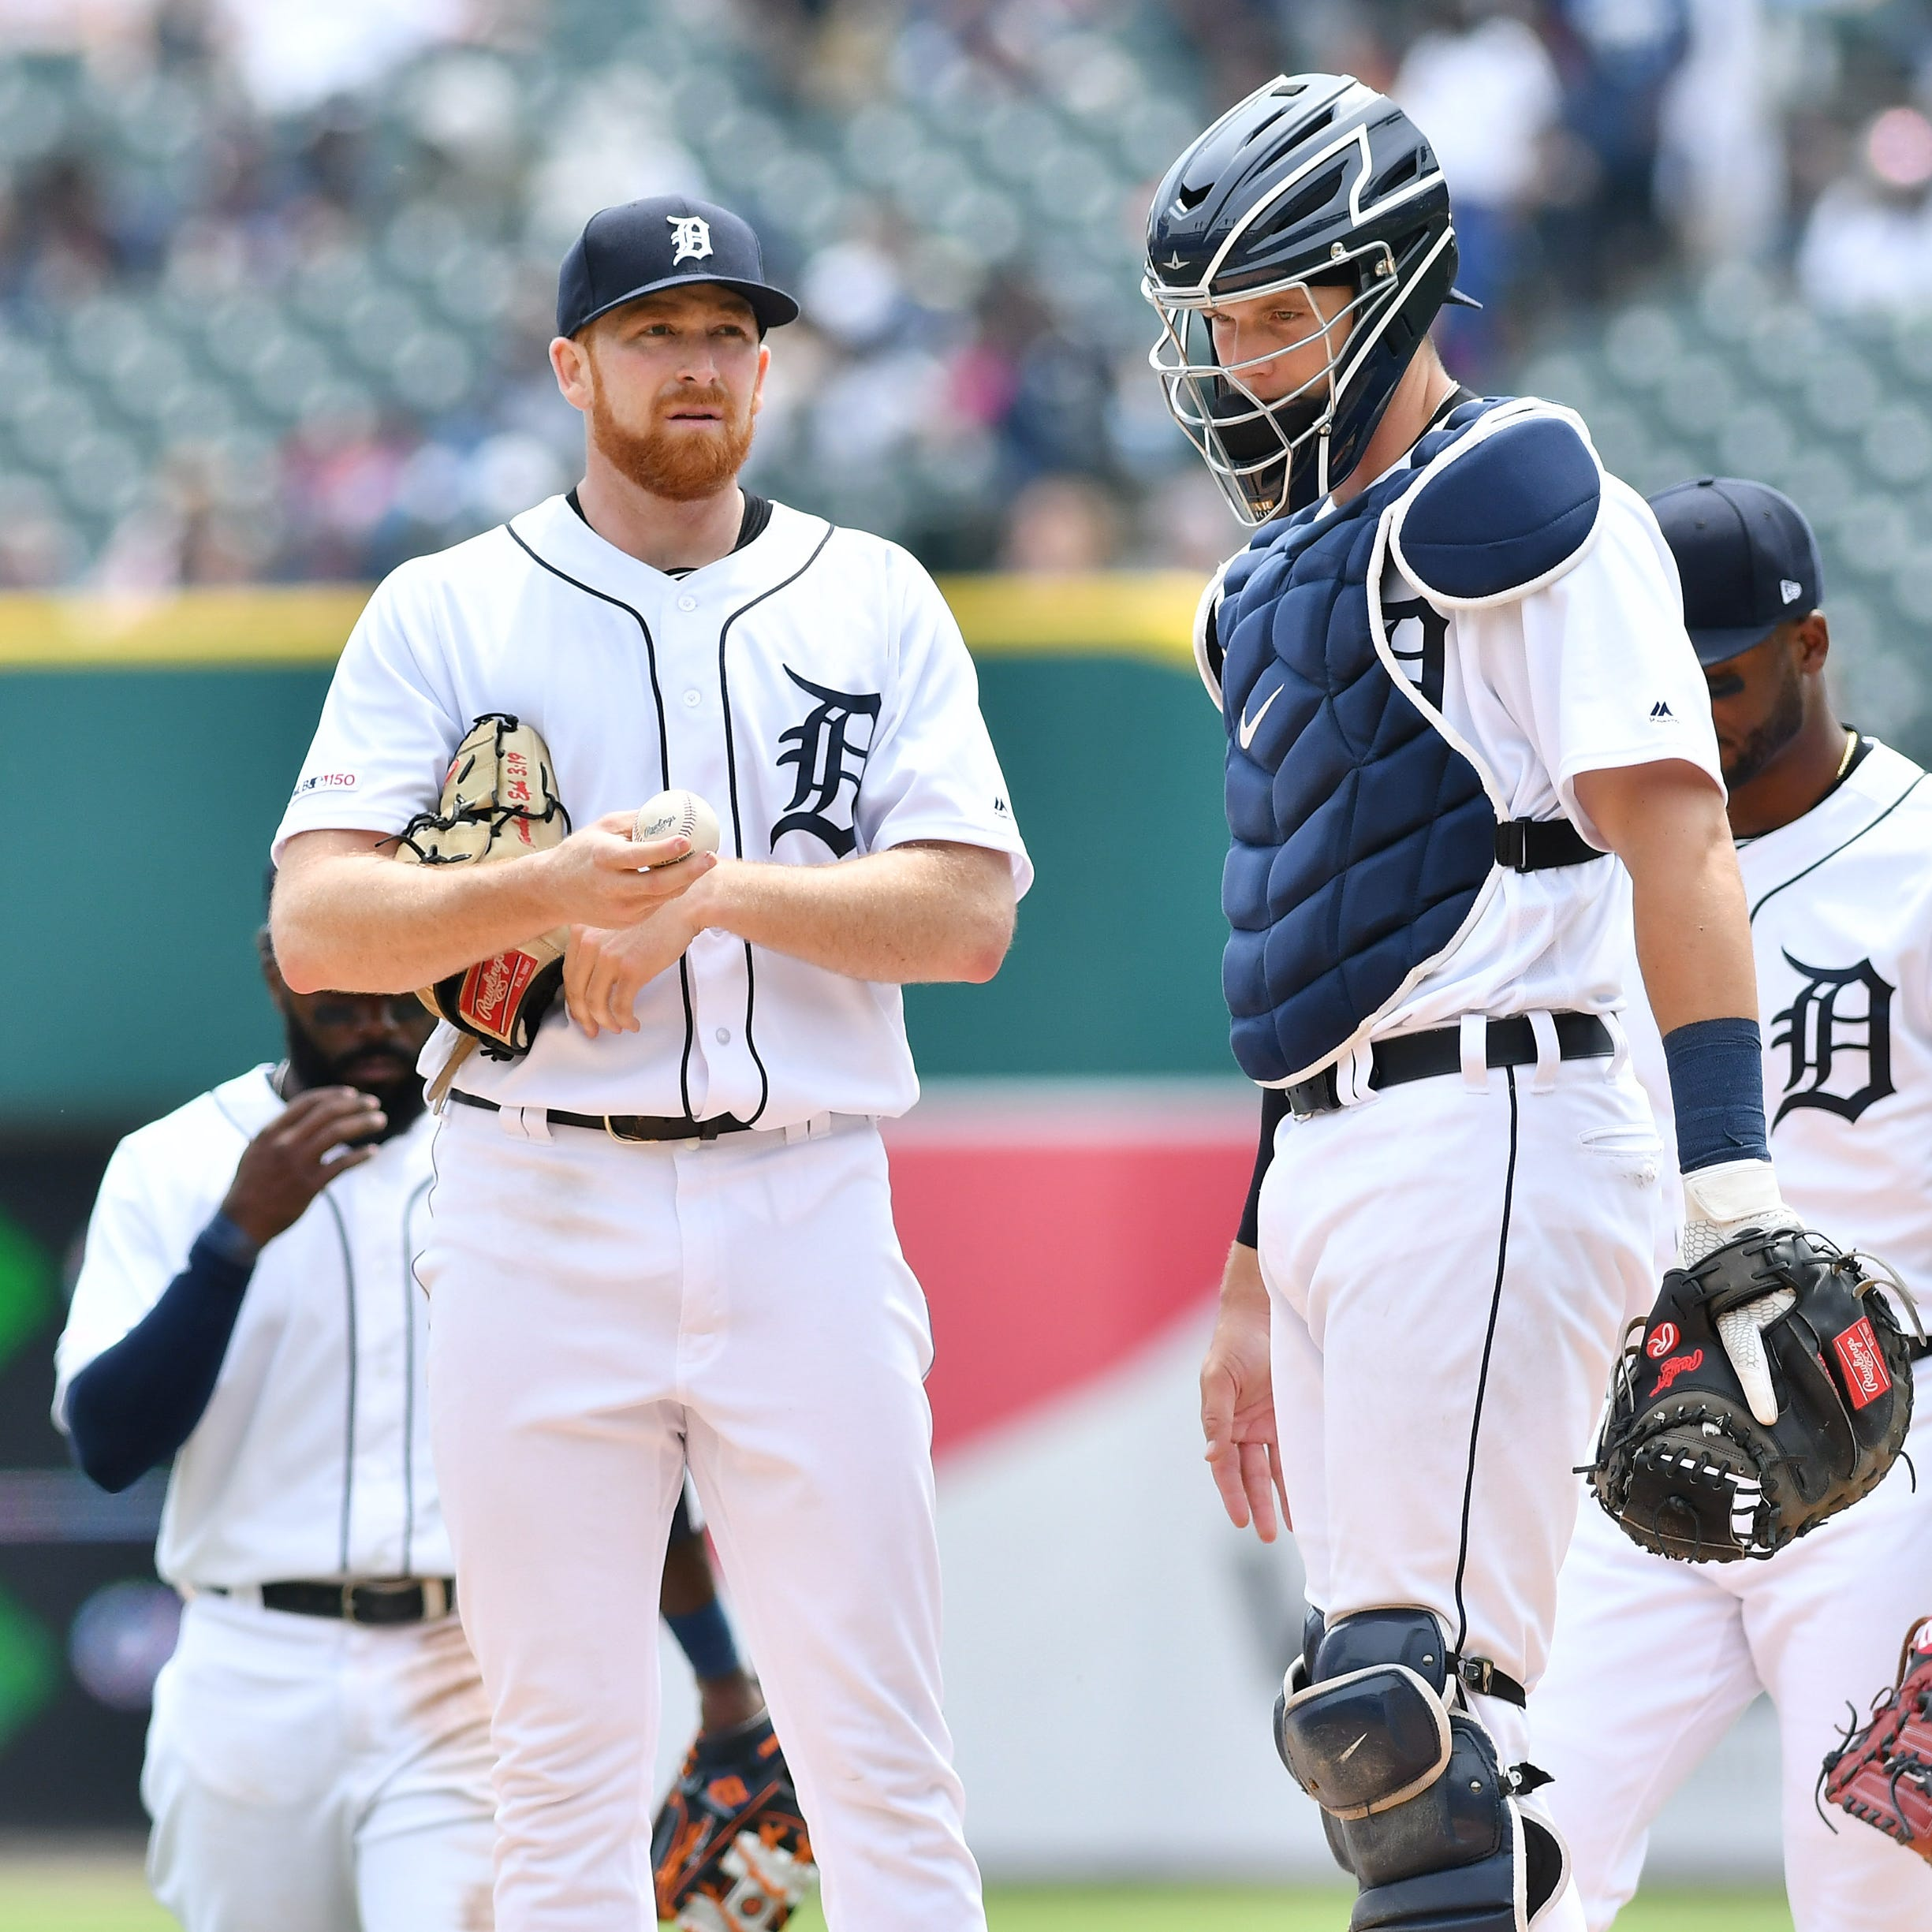 'We expect more': A's wallop Tigers, losing skid reaches four